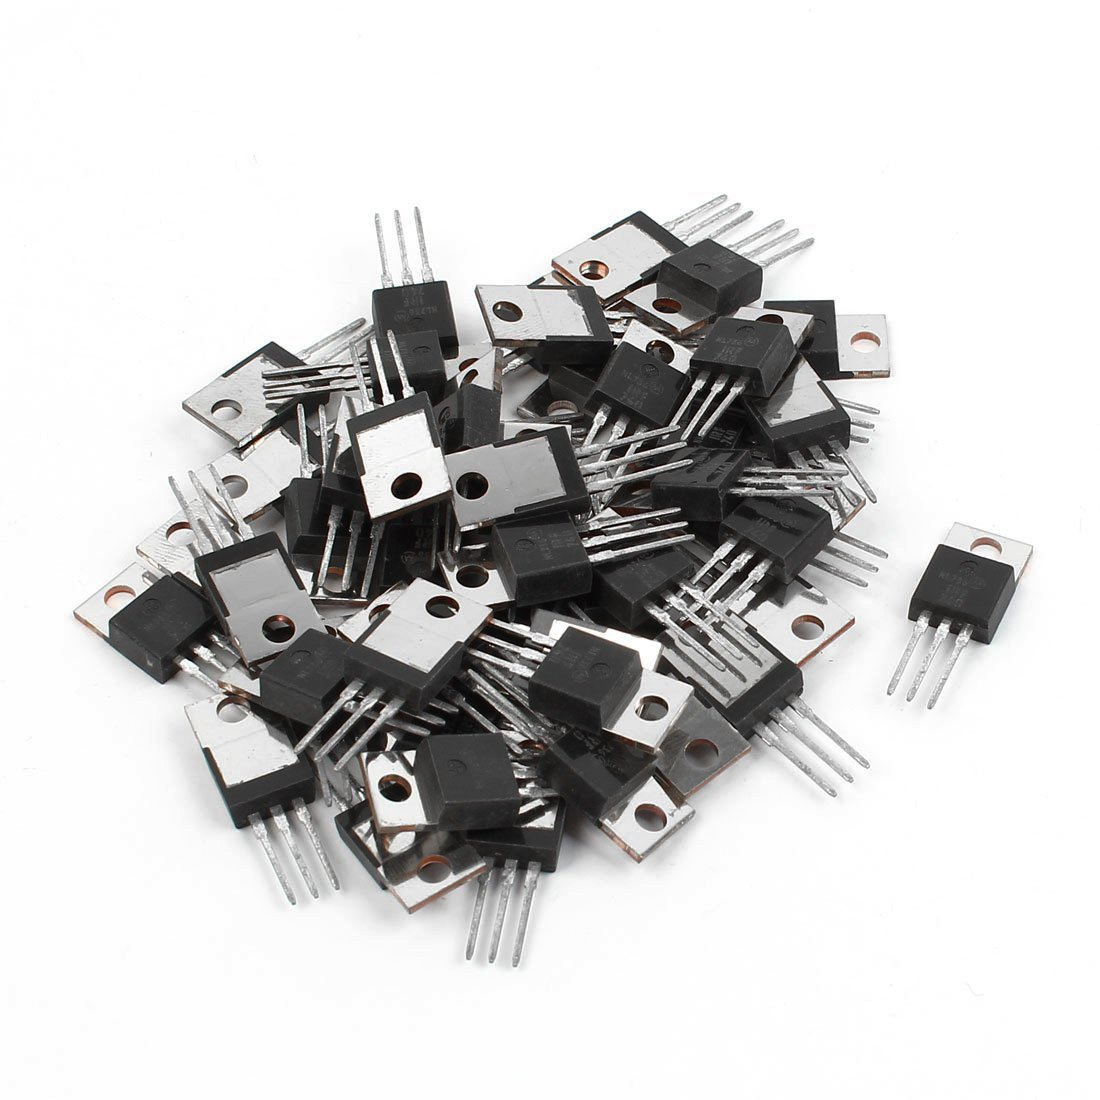 Power MOSFET - SODIAL(R) 50 Pcs IRF740 TO-220 N-Channel Power MOSFET 400V 10A